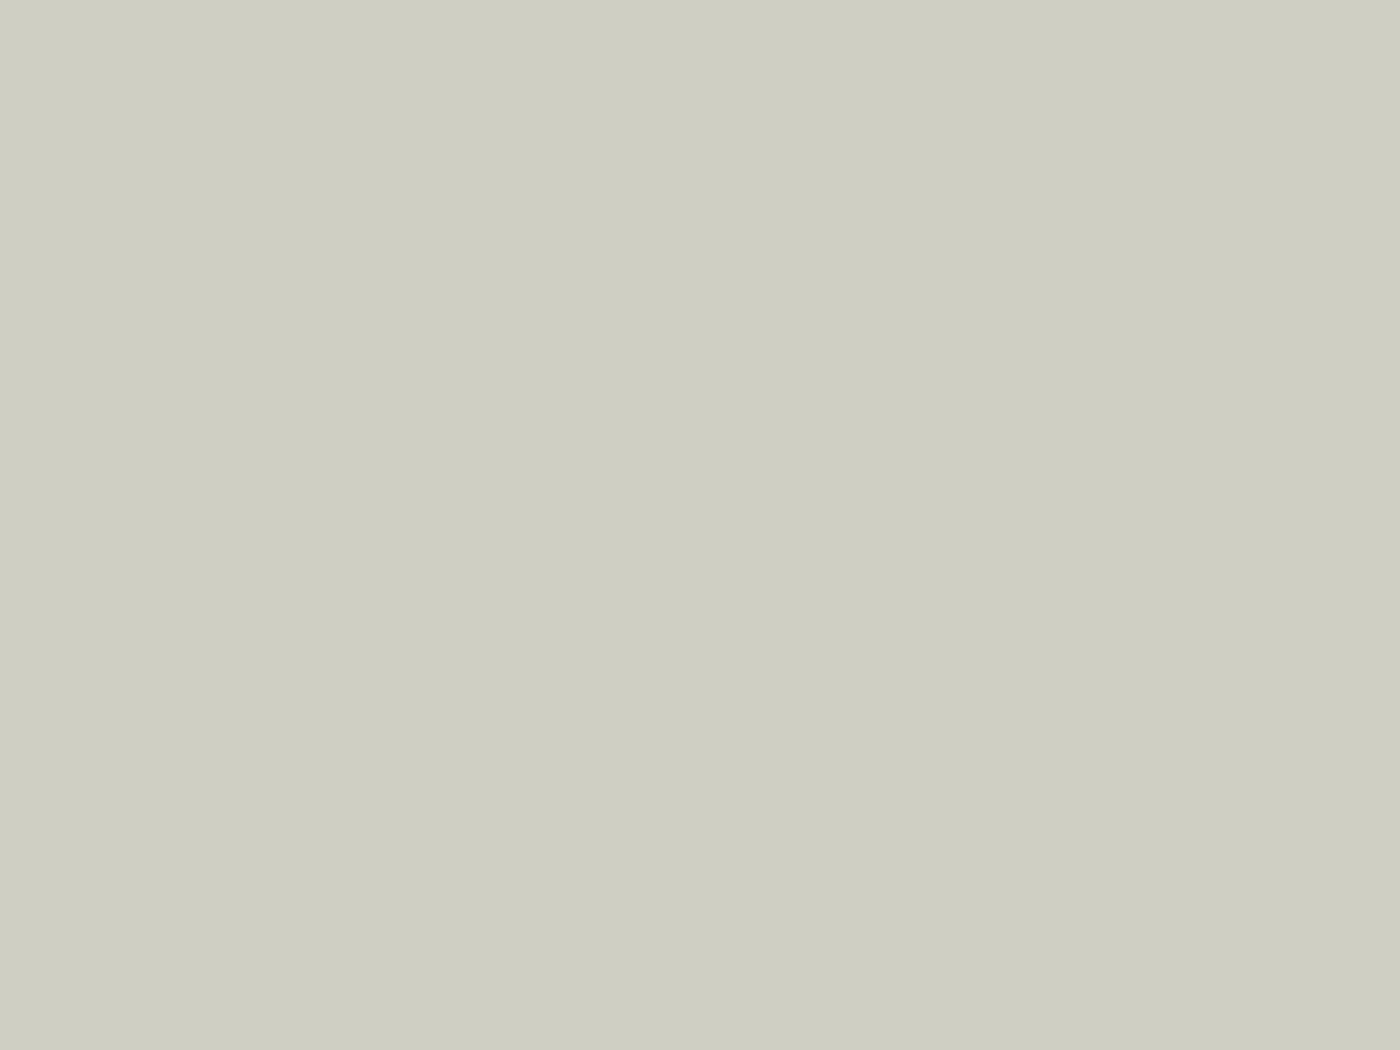 1400x1050 Pastel Gray Solid Color Background